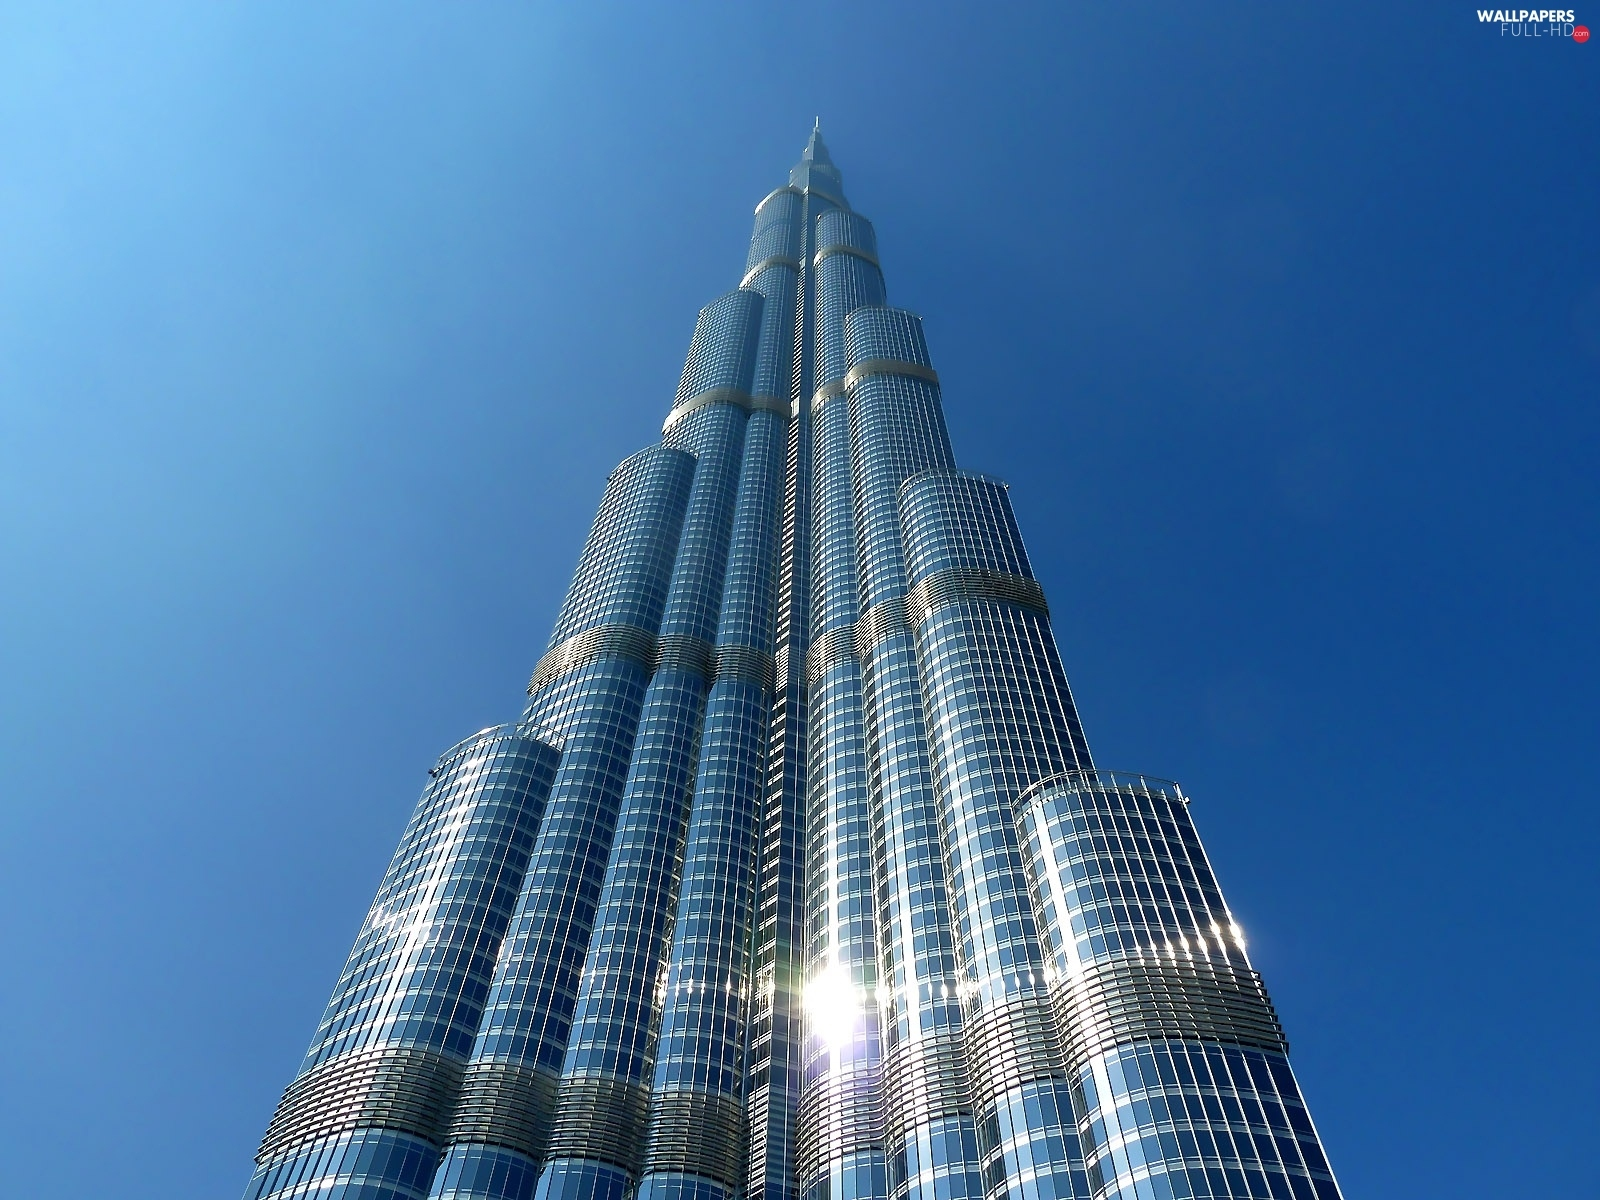 ##, The look, Dubaj, Sky, Burj Khalifa